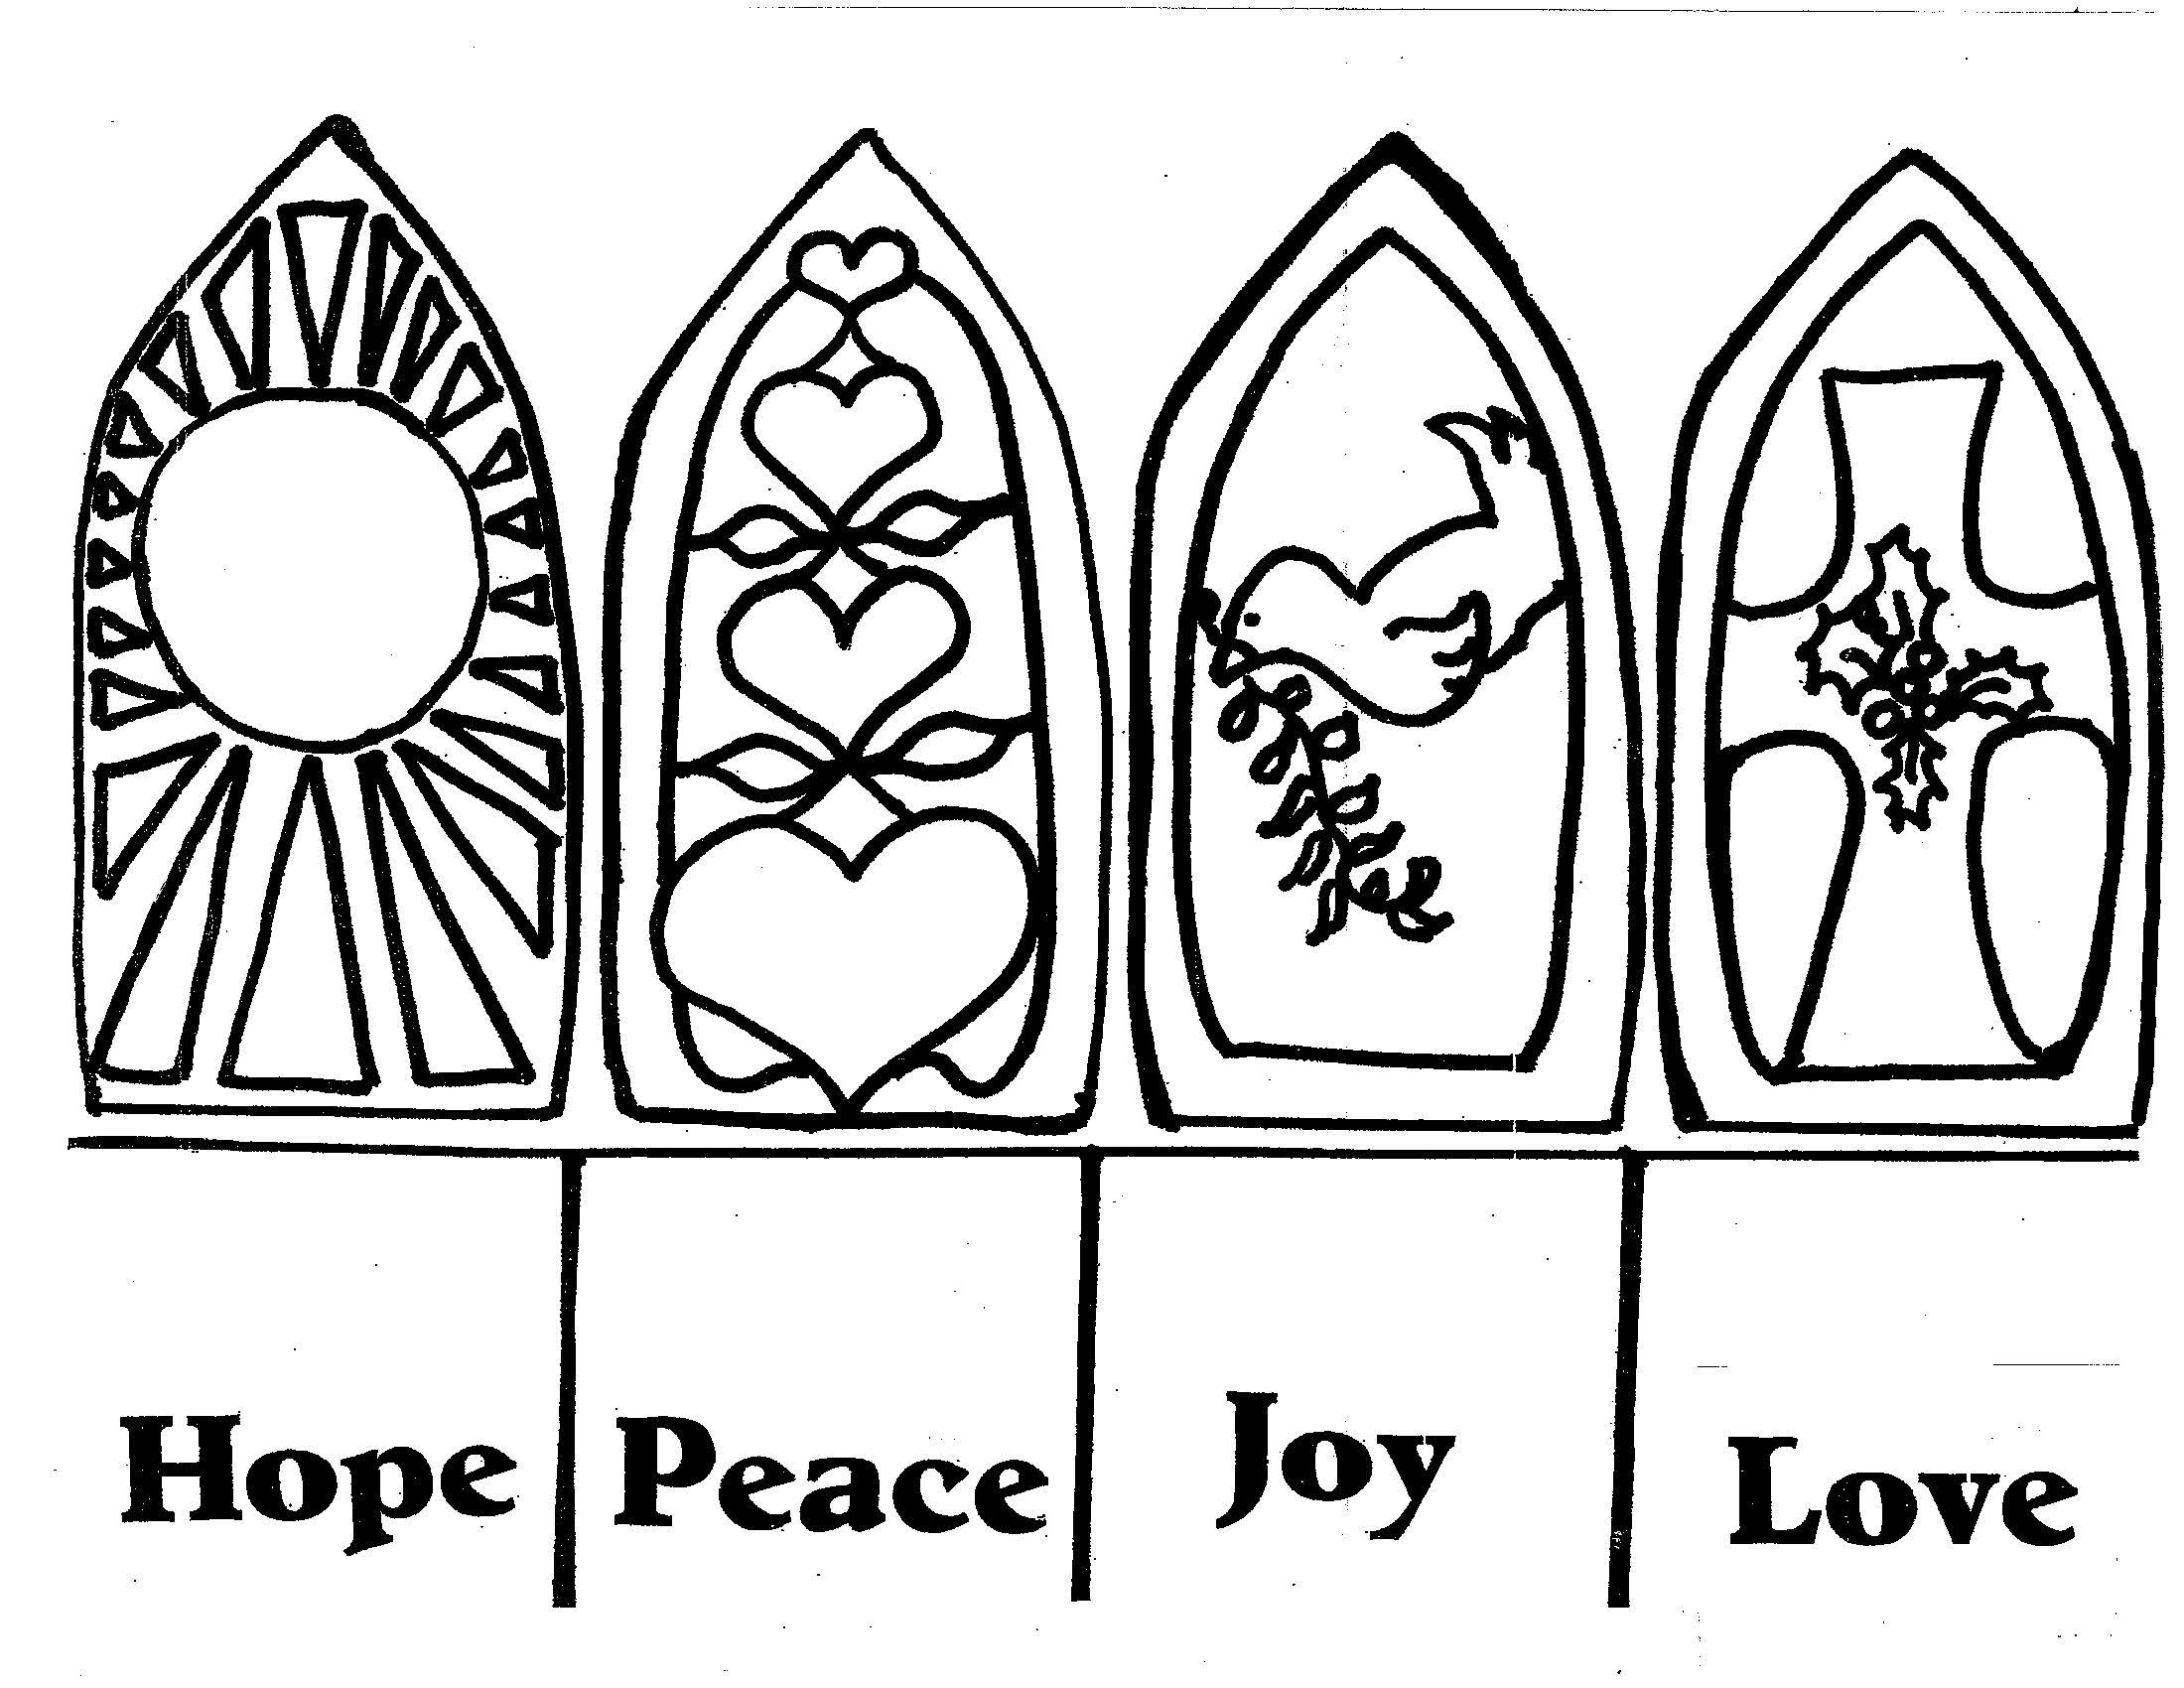 advent coloring pages for adults - photo#18